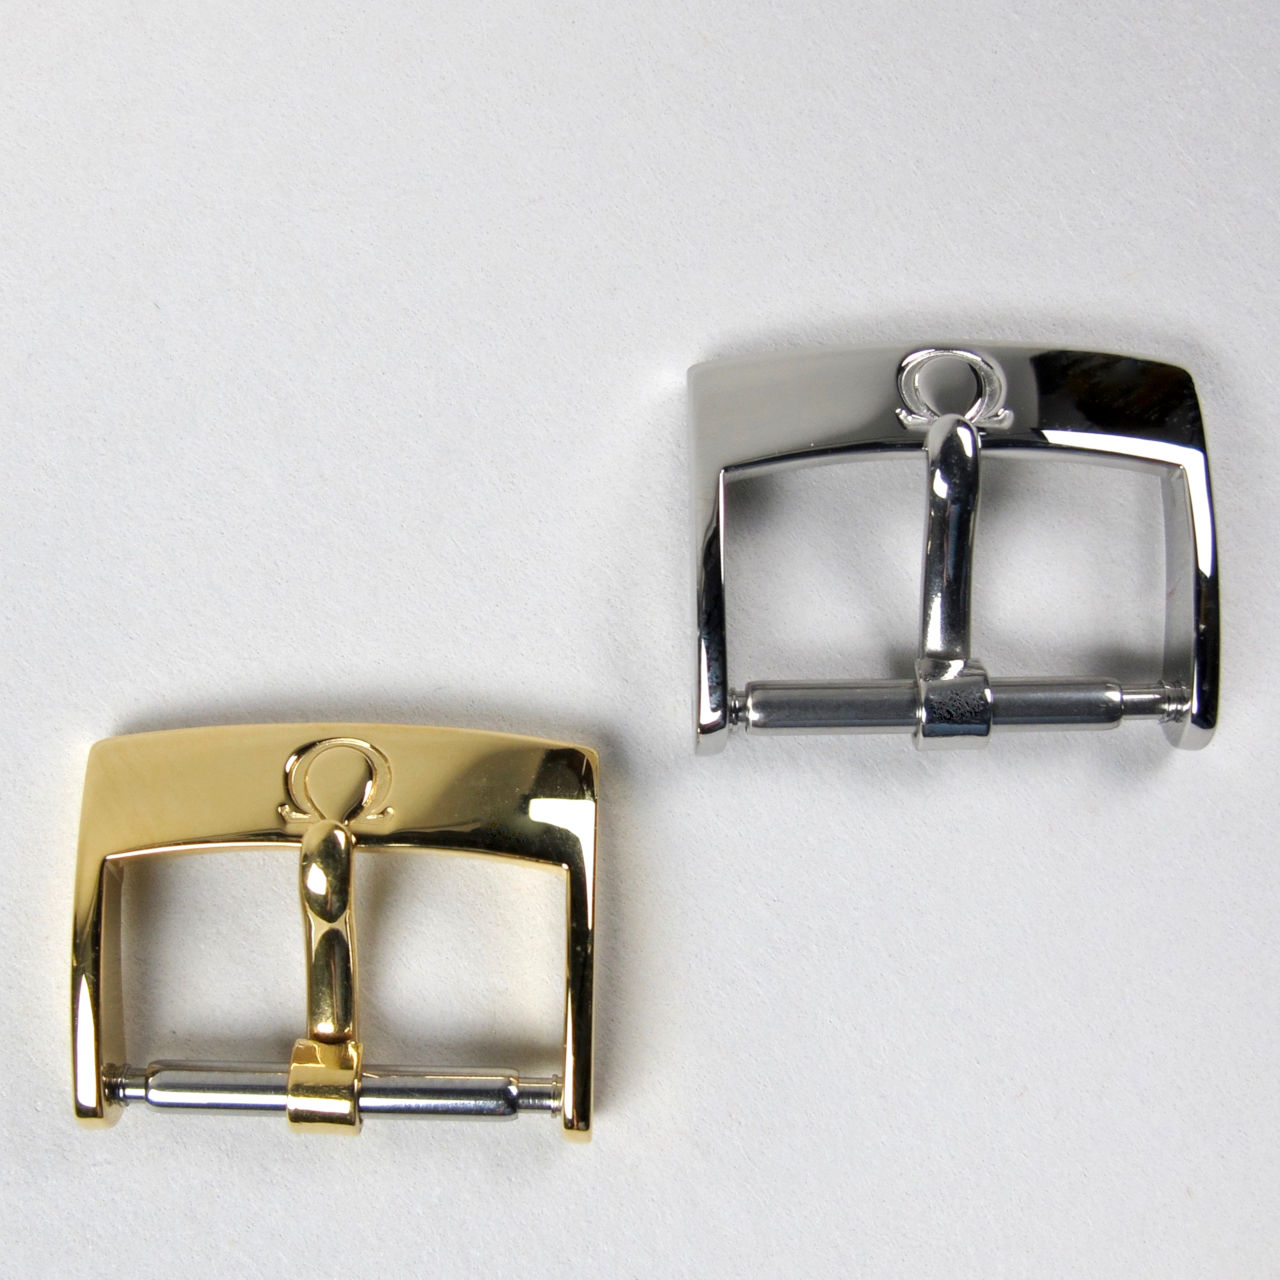 Omega wristwatch strap buckles